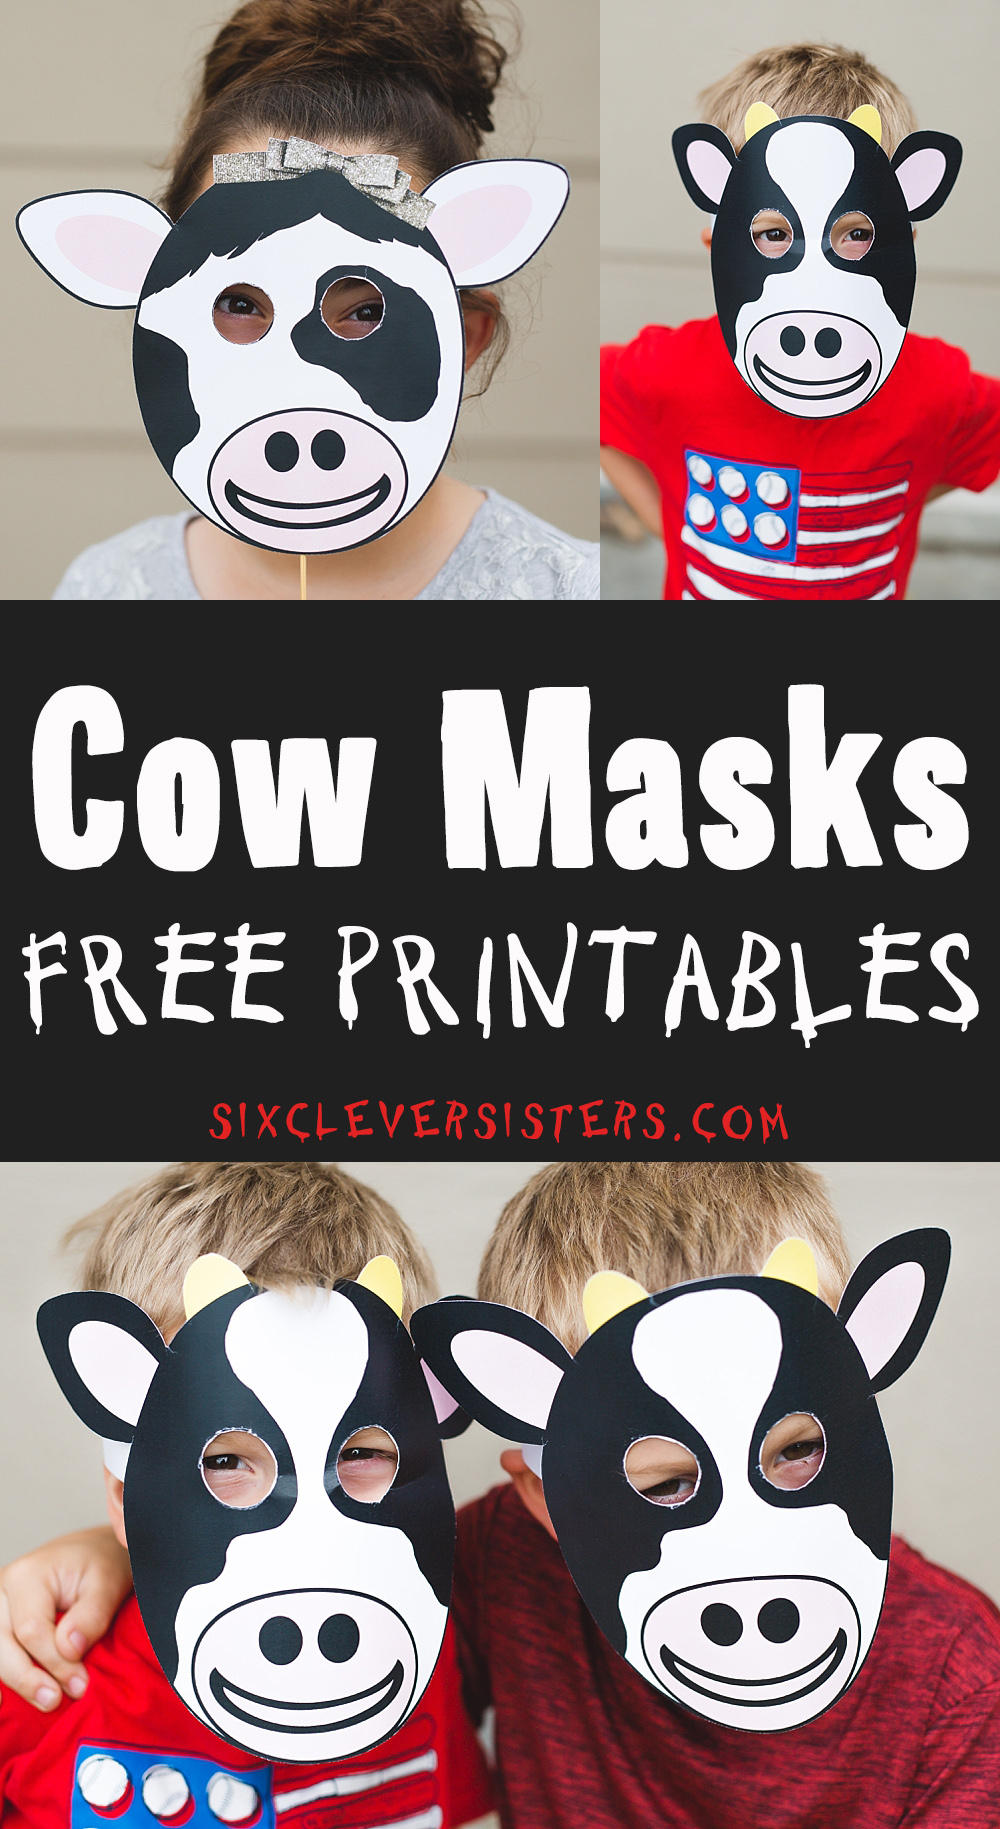 It's just a photo of Free Printable Cow Mask with regard to kindergarten